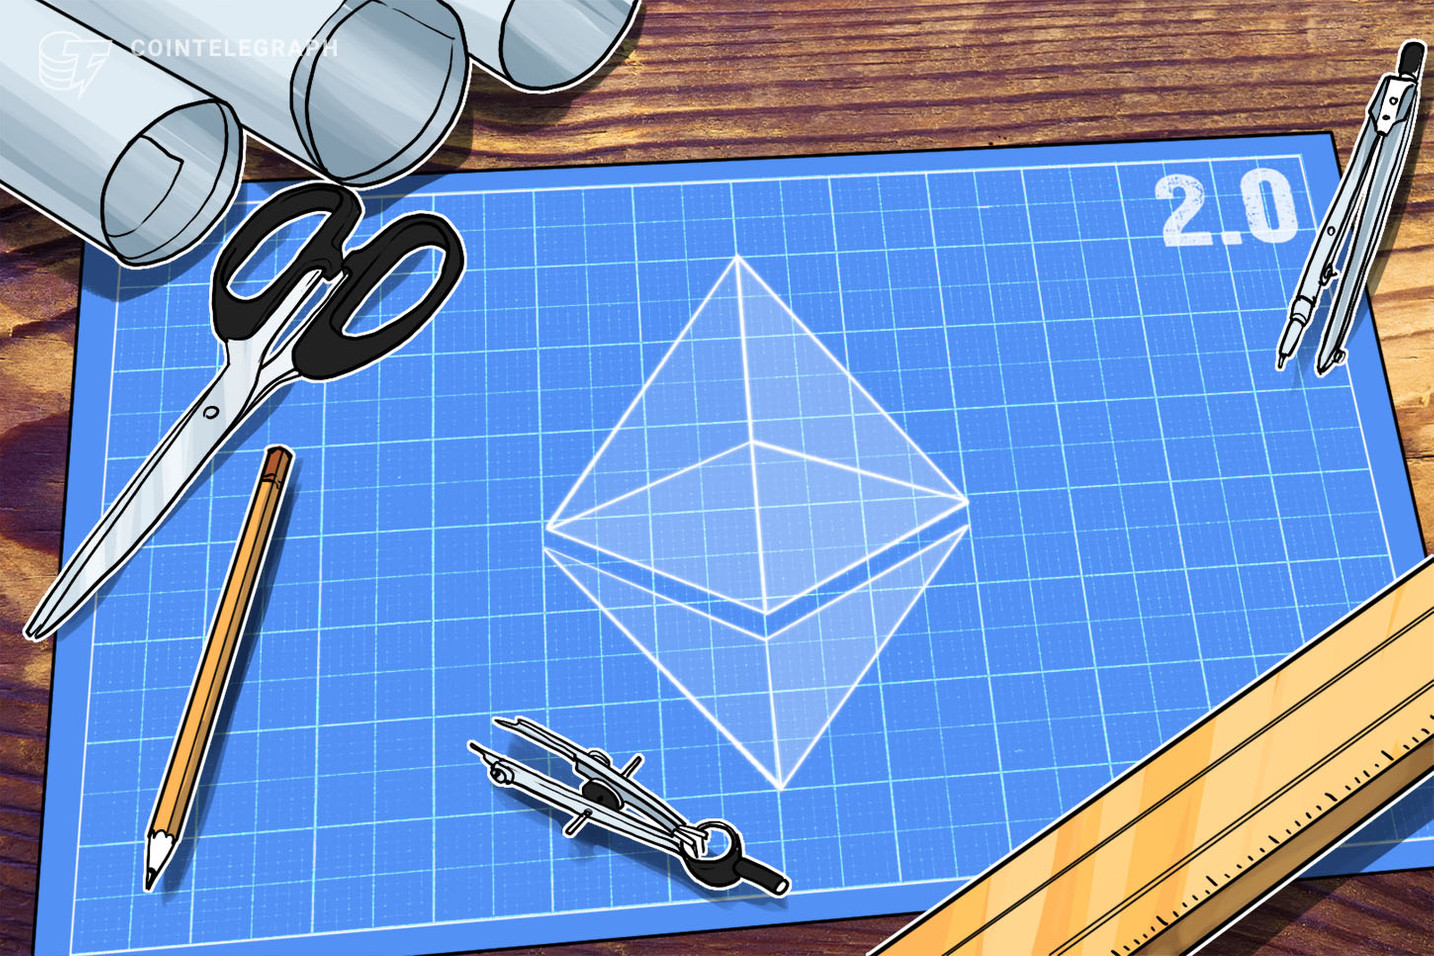 Ethereum 2.0 Validators to Earn up to 10% Annually for Staking: Report